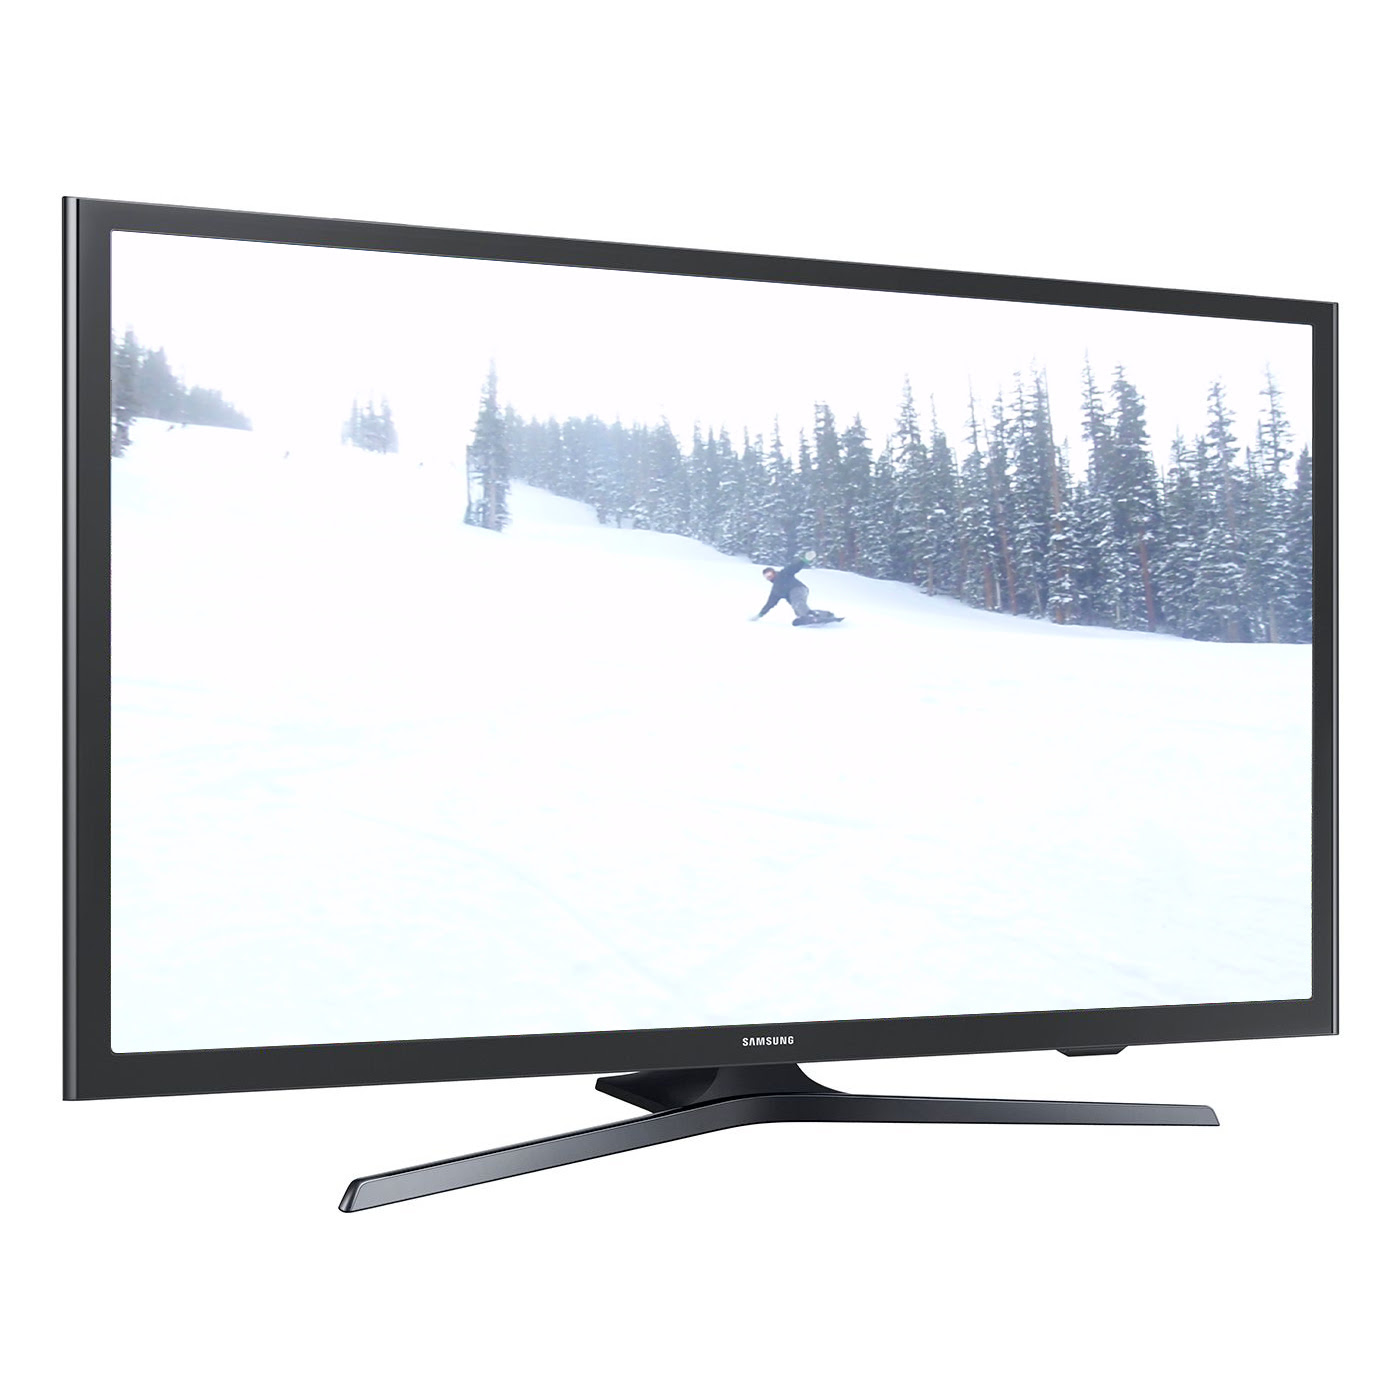 Samsung Refurbished 48 Class 1080p LED Smart Hdtv - UN48J520D